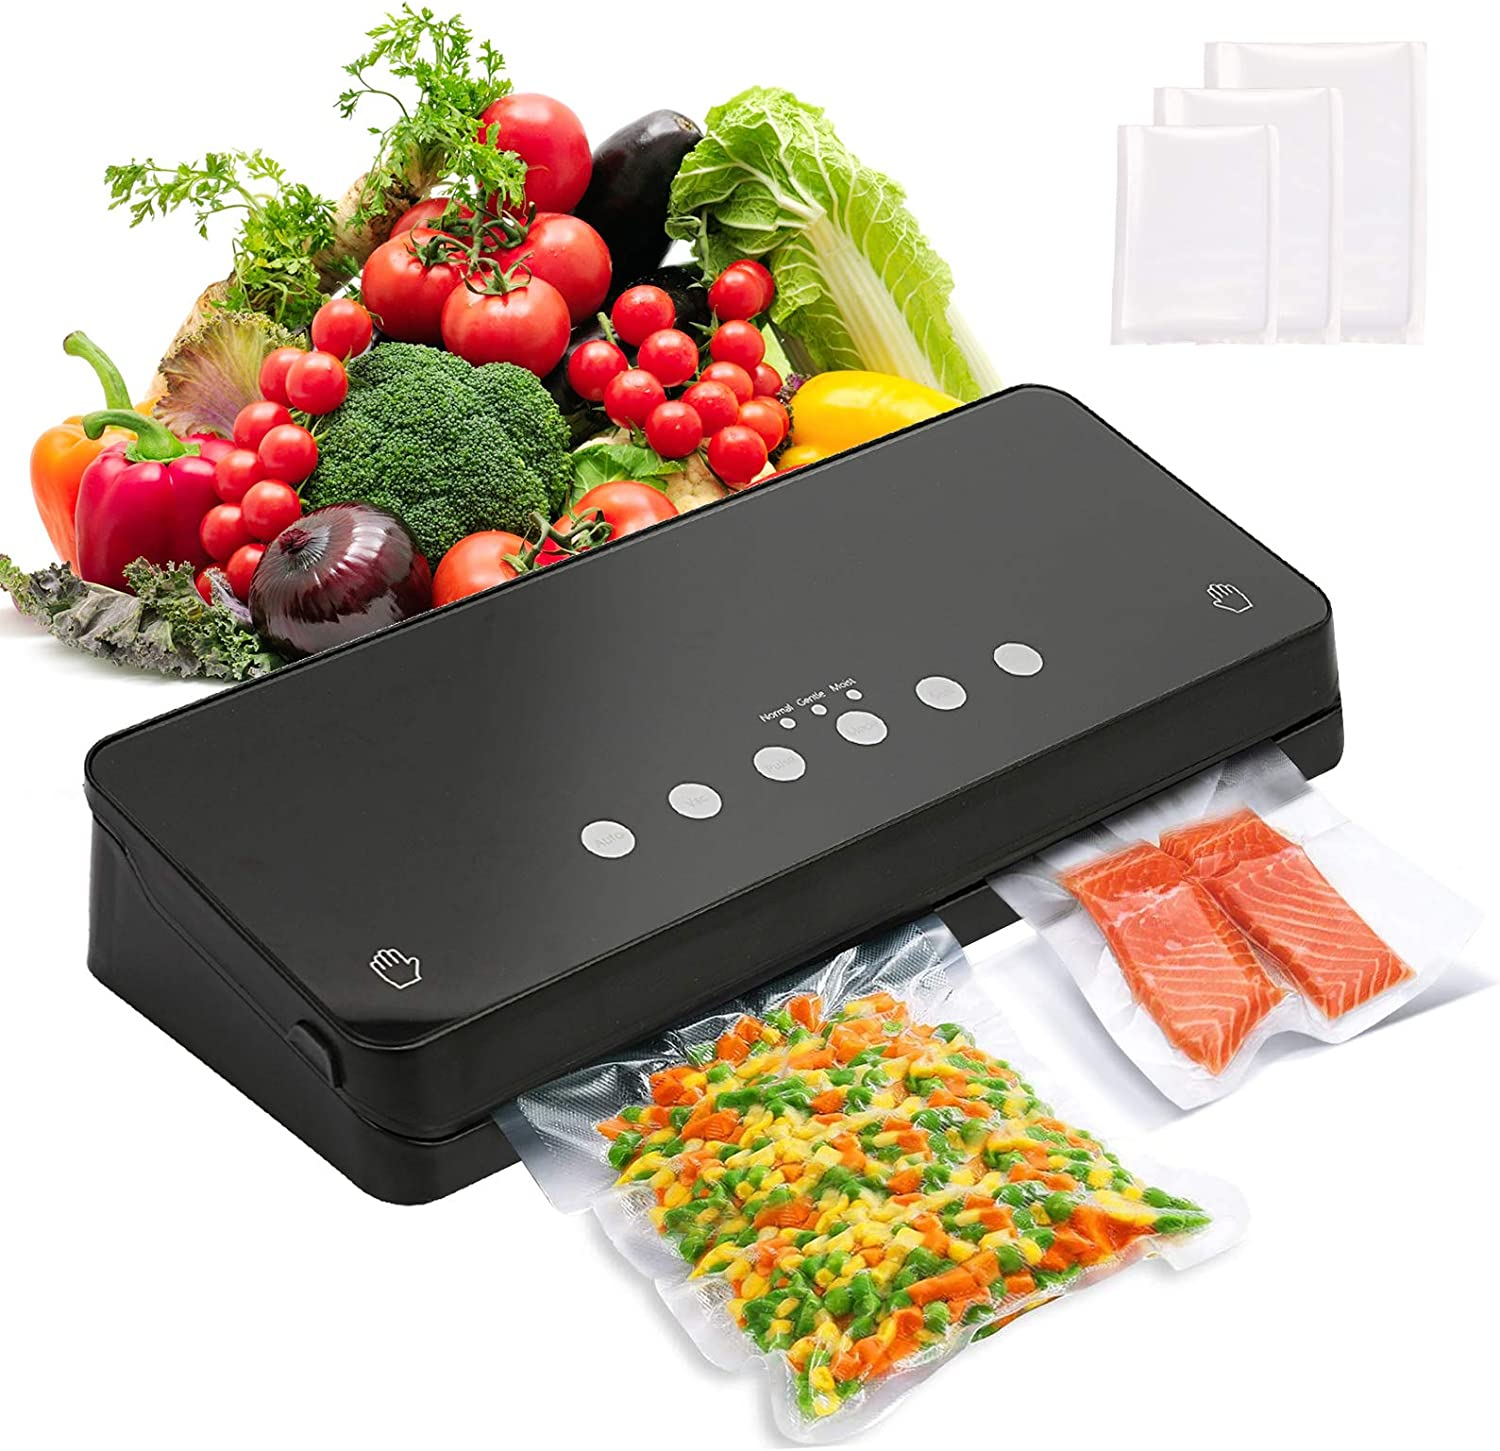 Vacuum Sealer Machine, Automatic Vacuum Air Sealing System for Food Savers w/Starter Kit, Food Sealer with Normal Gentle & Moist Food Modes, 30 Vacuum Bags, Led Indicator Light, Compact Design